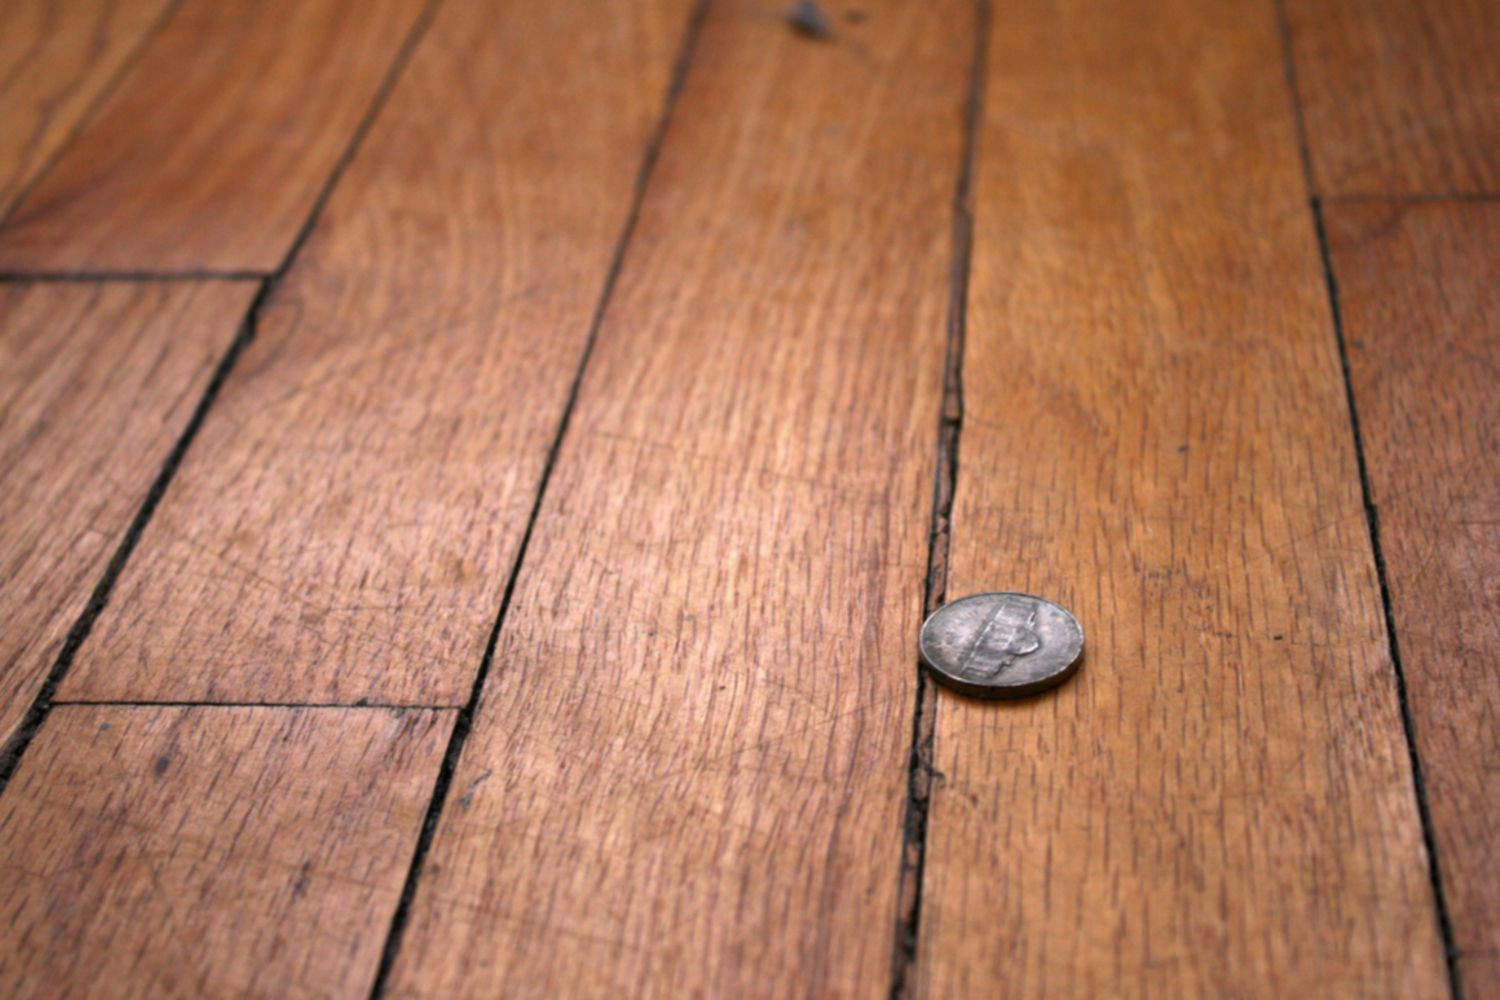 hardwood floor repair diy of how to repair gaps between floorboards with wood floor with gaps between boards 1500 x 1000 56a49eb25f9b58b7d0d7df8d